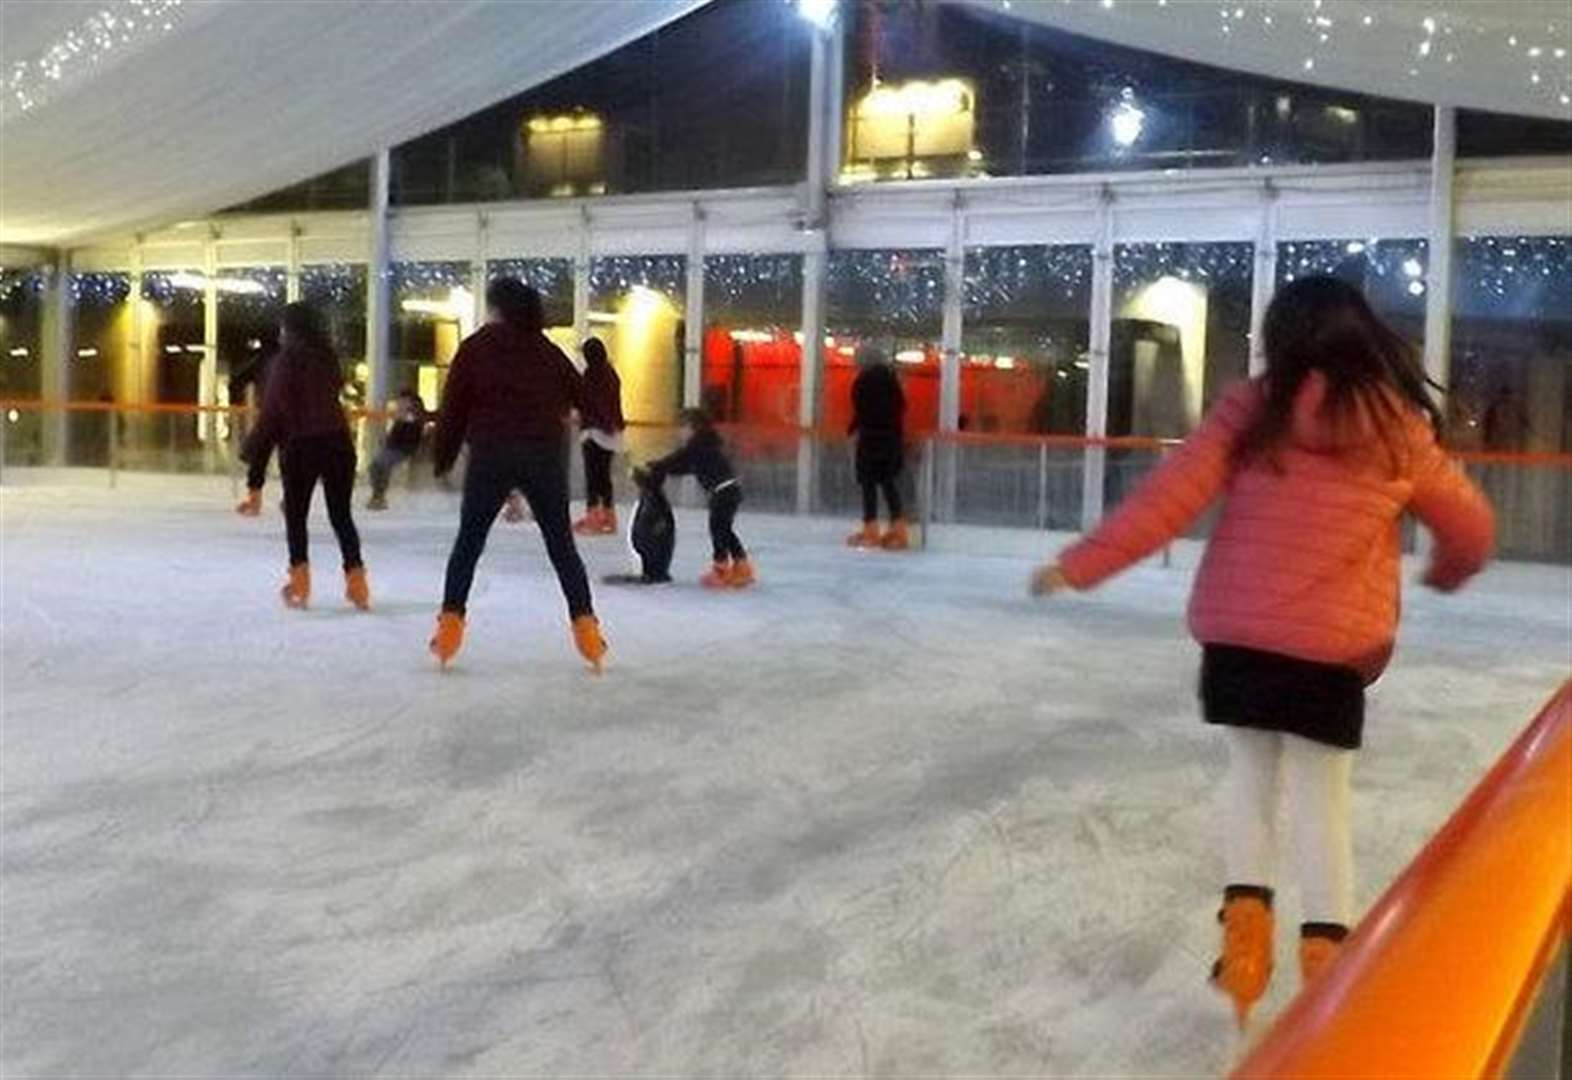 Ice rink plans shelved... yet again